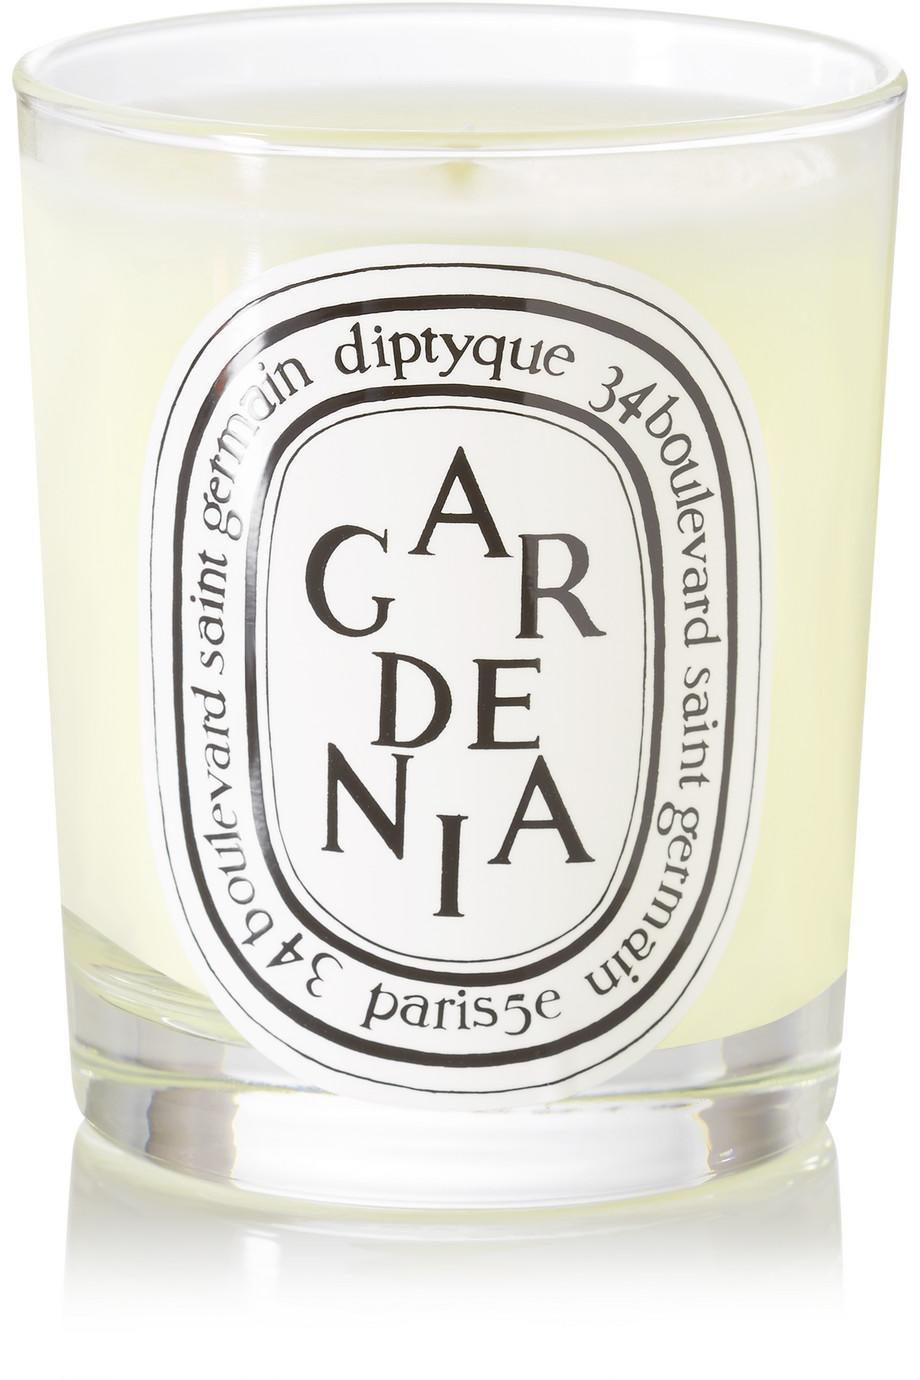 """<h2>Diptyque Gardenia Candle</h2><br>If anyone deserves a relaxing candlelit night in, it's your mom. Give her the gift of premium aromatherapy by adding to her candle collection with a heavenly scented votive like this Diptyque one.<br><br><strong>Diptyque</strong> Gardenia Scented Candle, 190g, $, available at <a href=""""https://go.skimresources.com/?id=30283X879131&url=https%3A%2F%2Fwww.net-a-porter.com%2Fus%2Fen%2Fproduct%2F658538%3F"""" rel=""""nofollow noopener"""" target=""""_blank"""" data-ylk=""""slk:Net-A-Porter"""" class=""""link rapid-noclick-resp"""">Net-A-Porter</a><span class=""""copyright"""">Photo Courtesy of Net-a-Porter.</span>"""